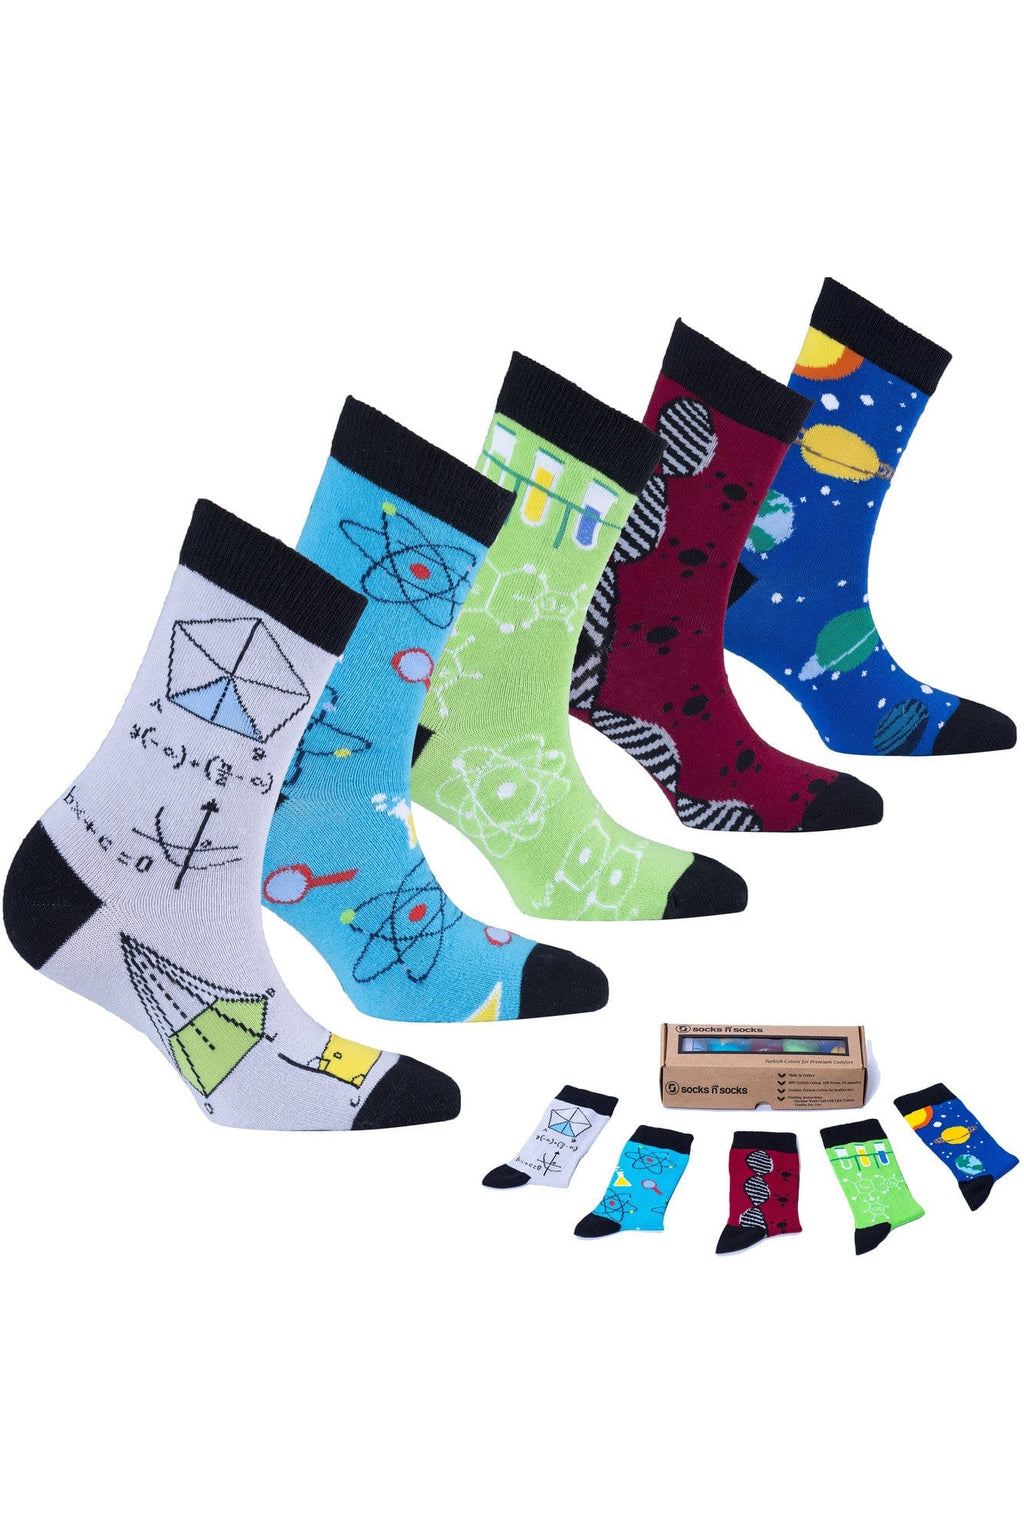 Women's Nerd Socks Set - Himelhoch's